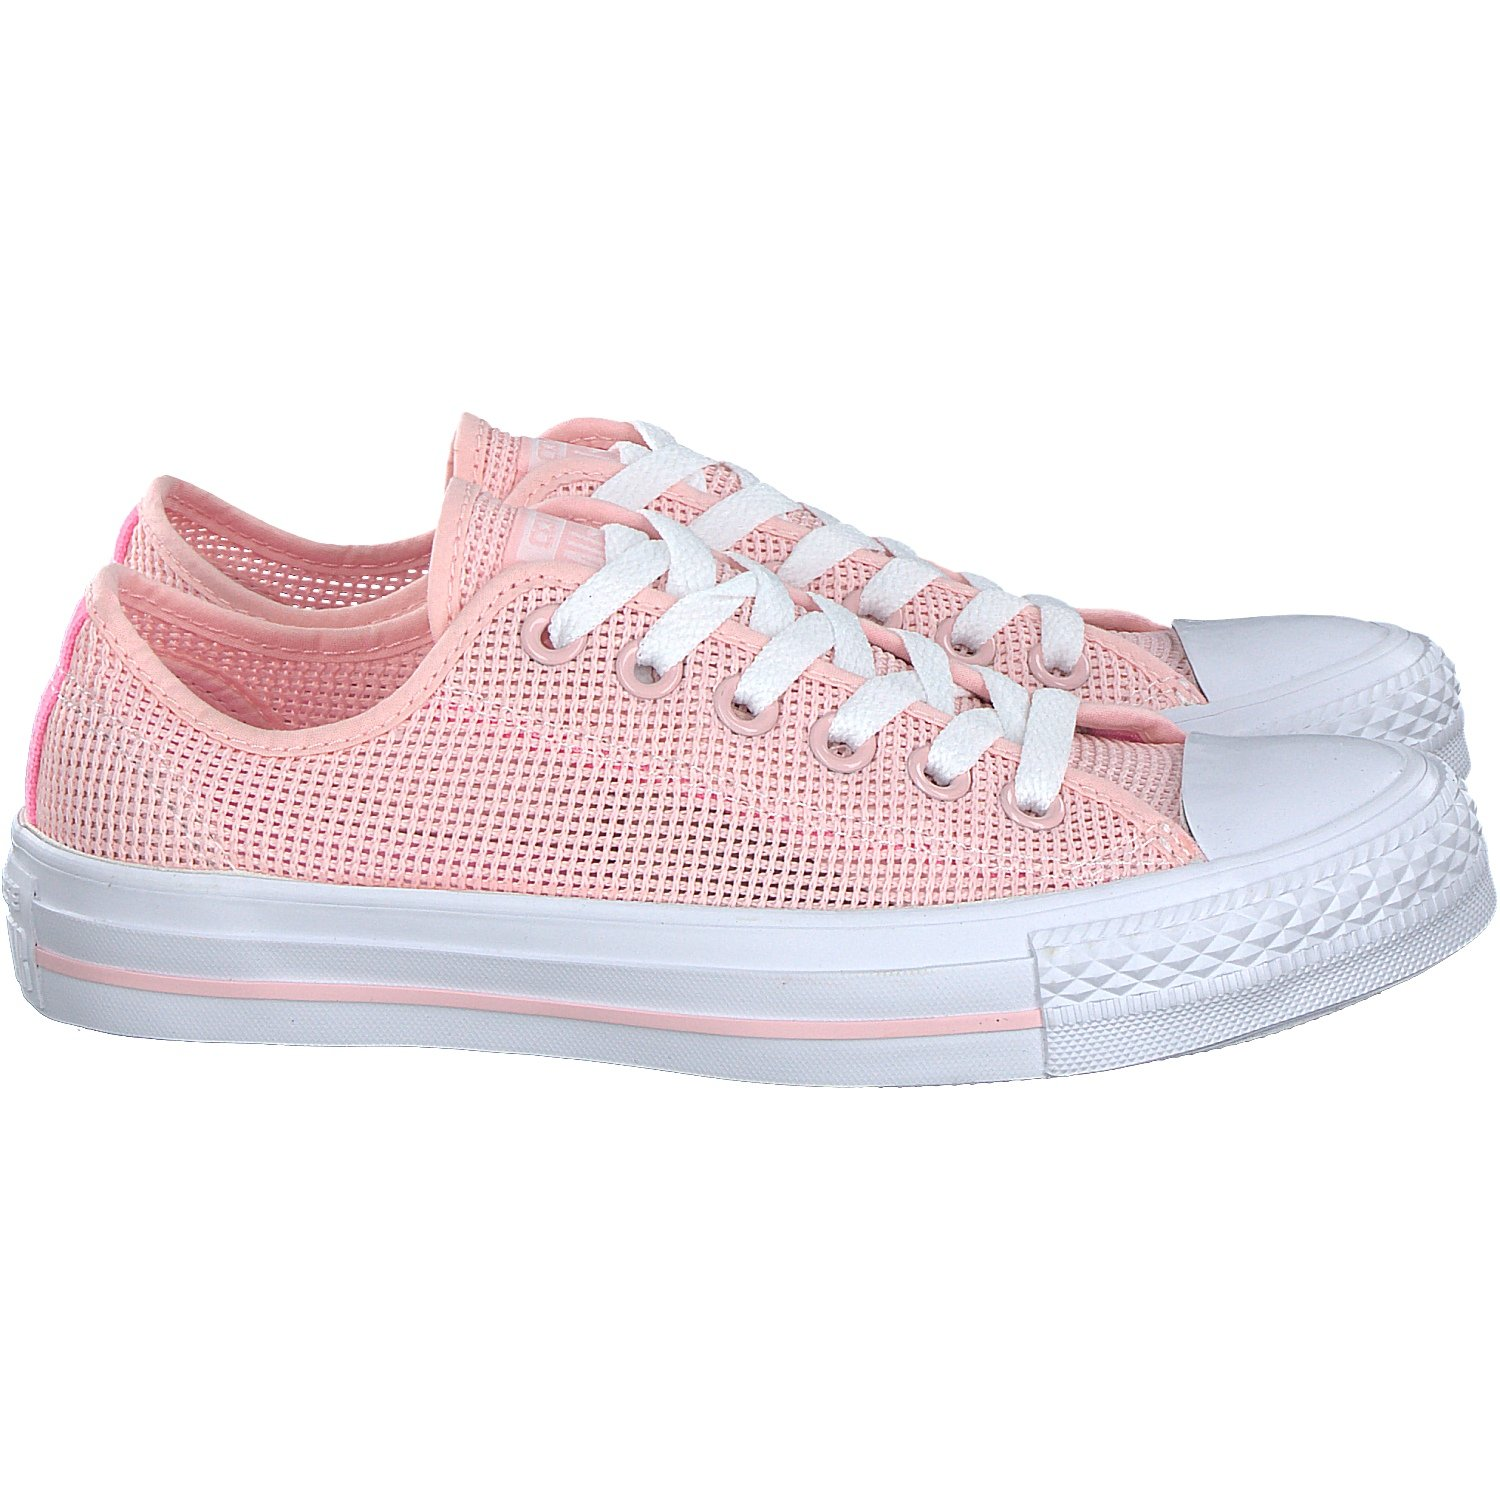 Disco Th soup  Women's Sports & Outdoors Converse All Star Ox Trainers Pink